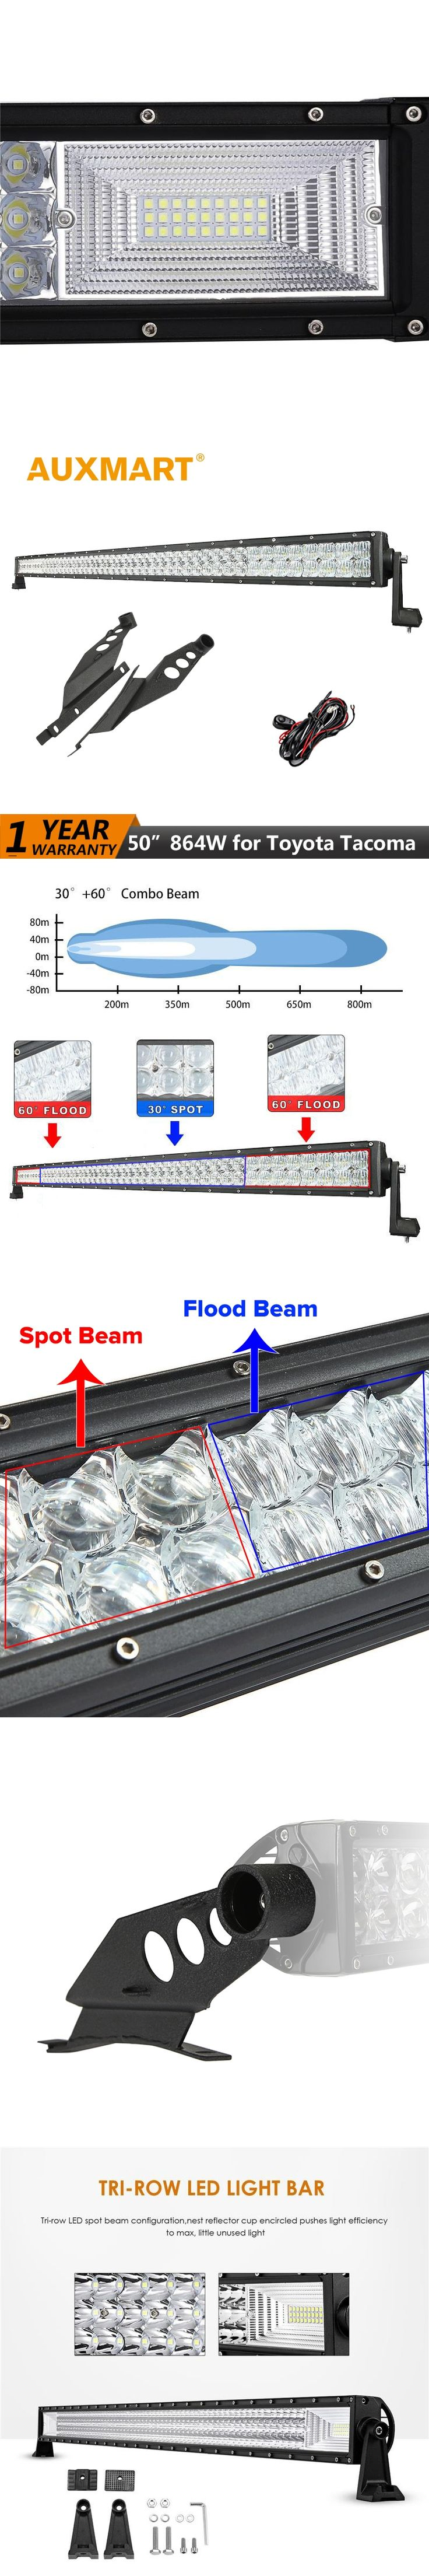 Auxmart for Toyota Tacoma 2005~2015 LED Light bar 50 inch 5D 864W Offroad 3-Row 702W LED Work Light bar Combo beams lamp holder